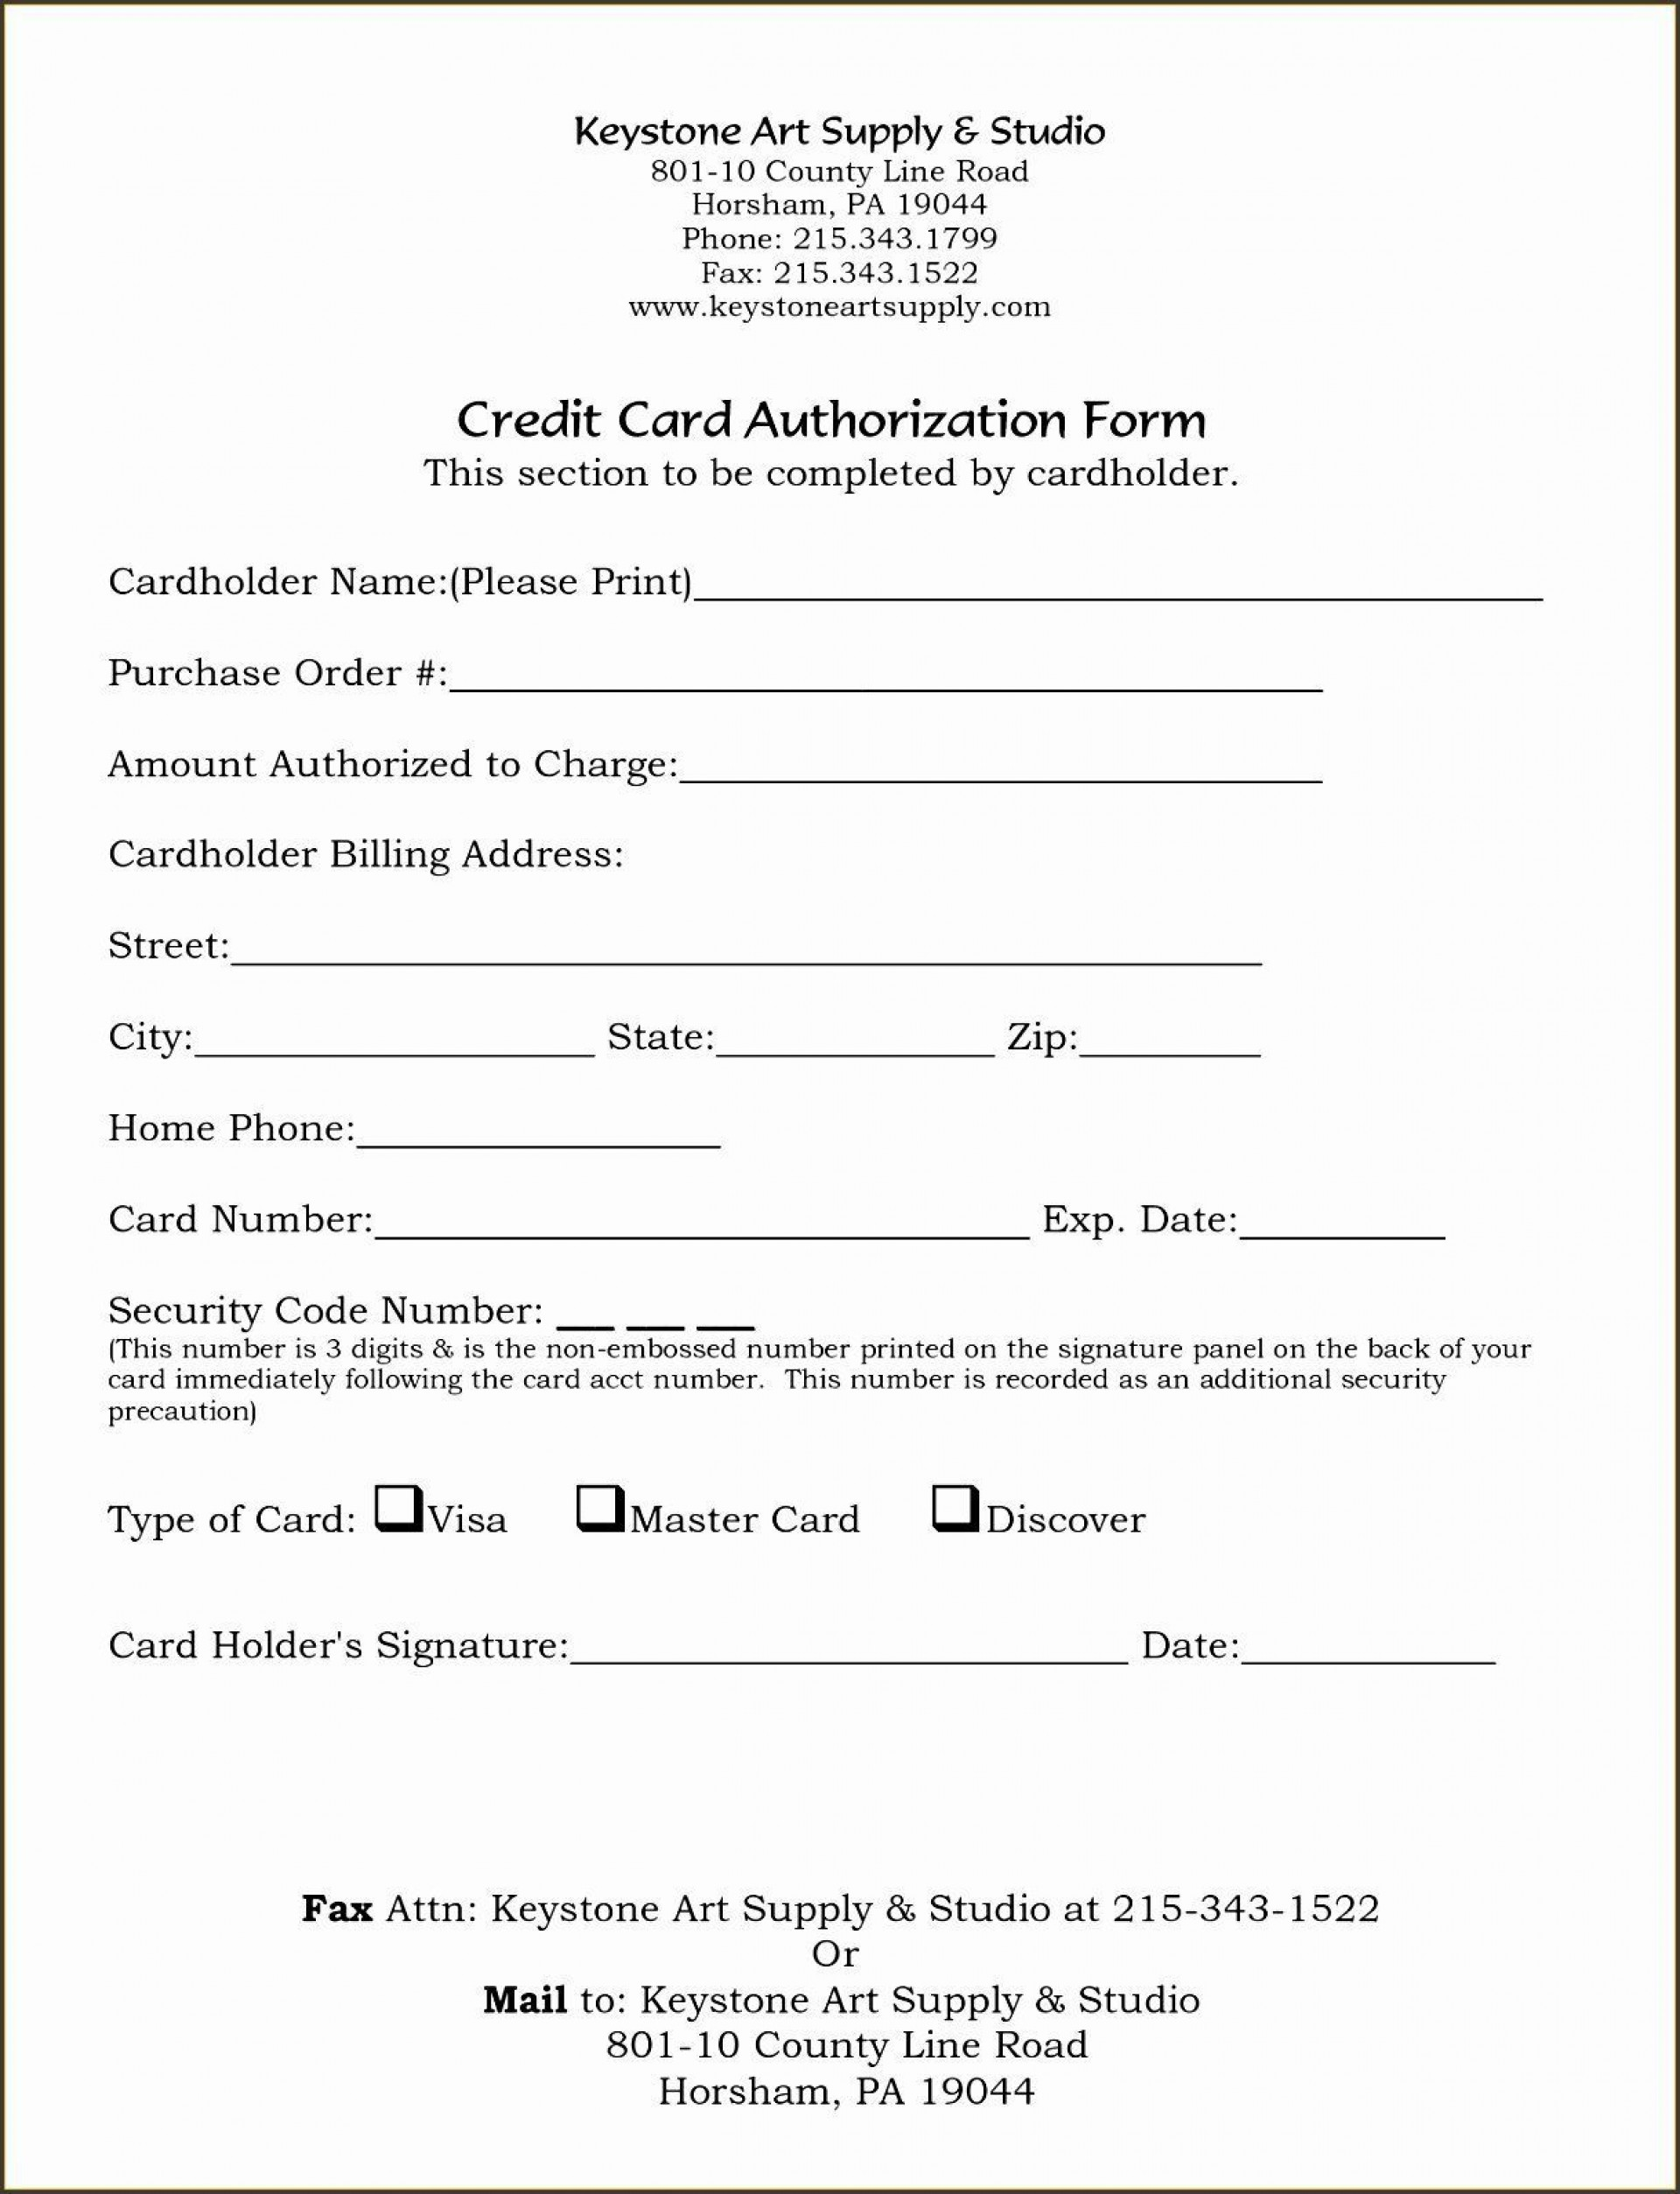 004 Shocking Credit Card Form Template Excel High Def  Authorization Payment1920